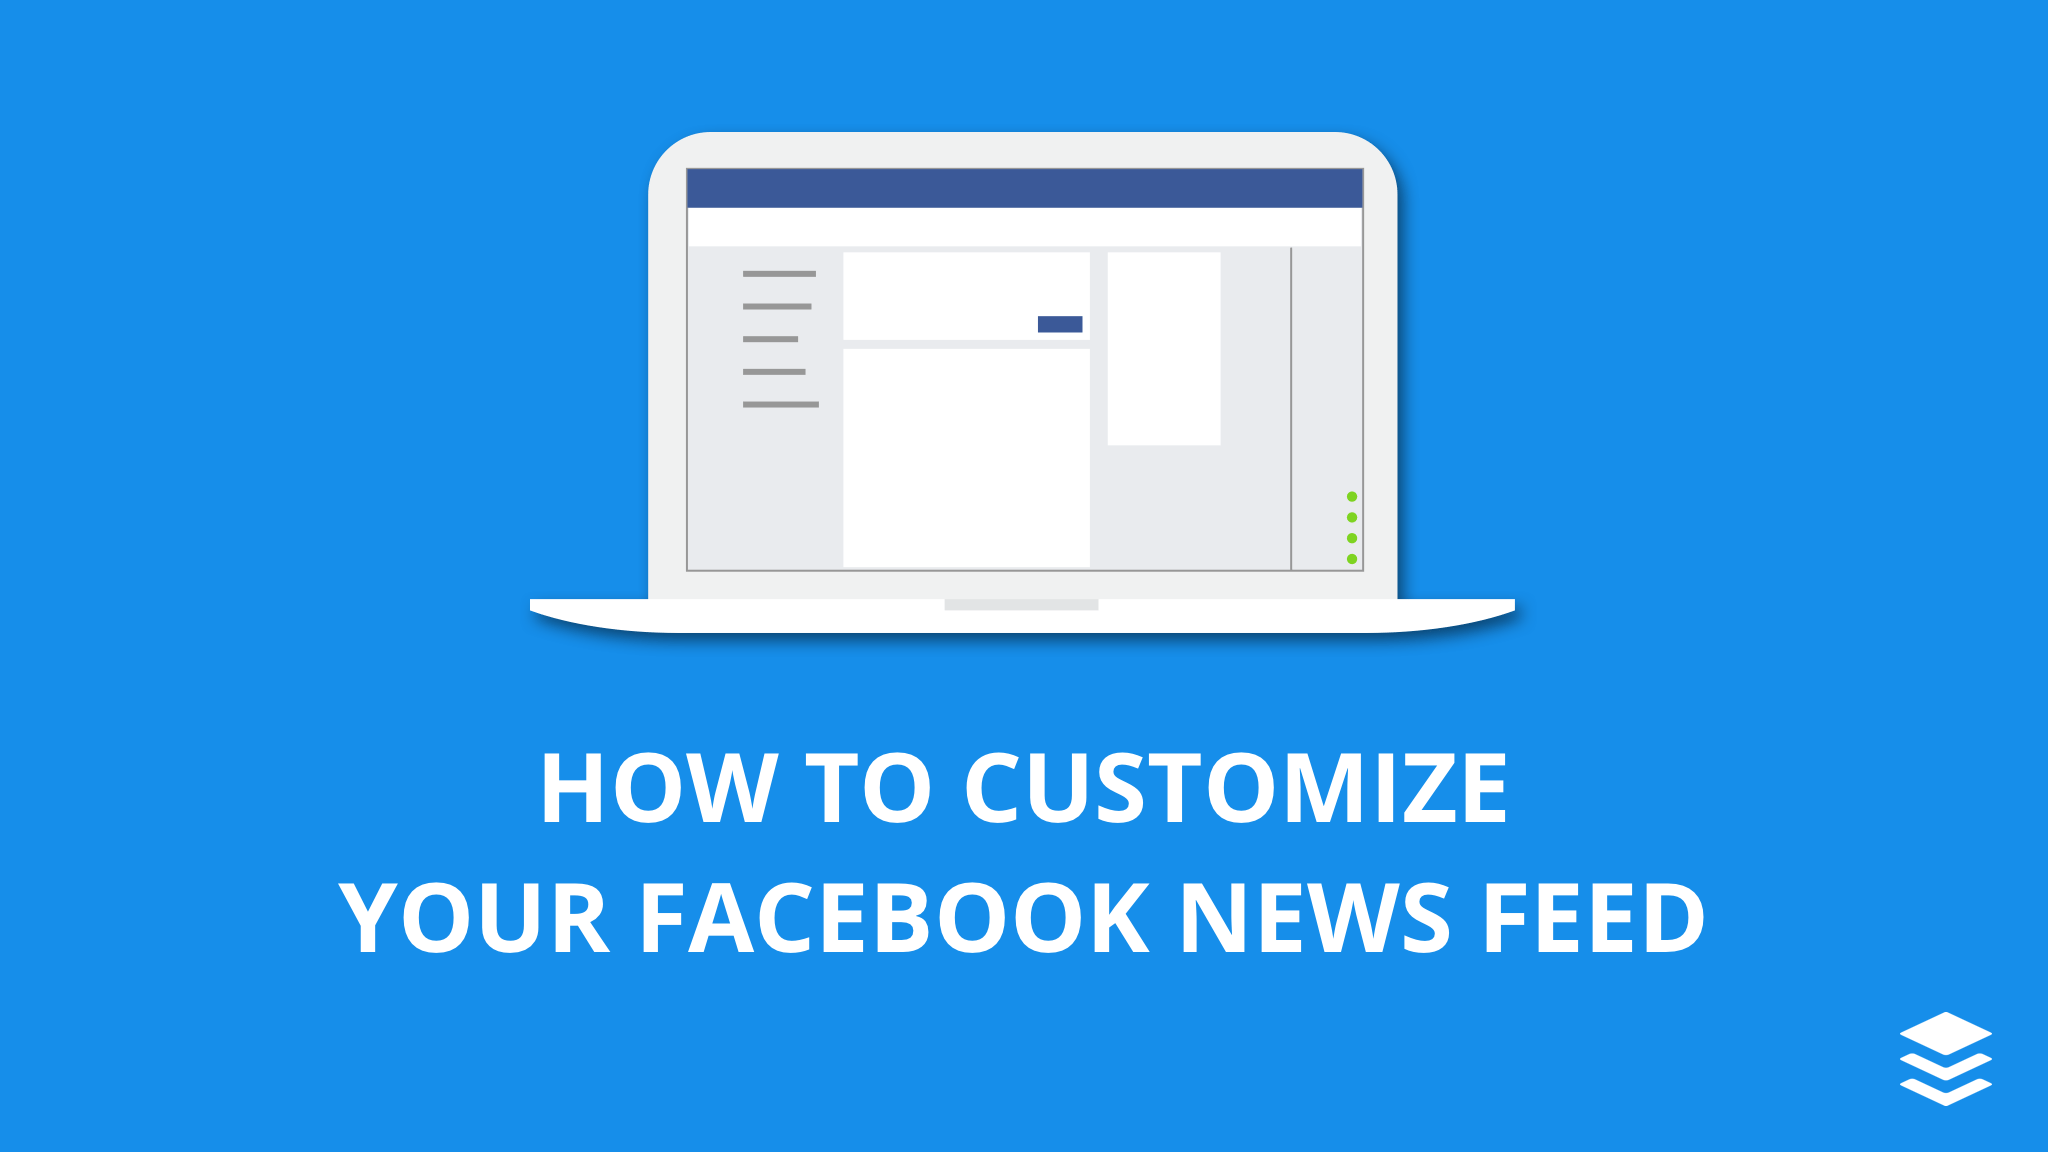 Customize your Facebook News Feed